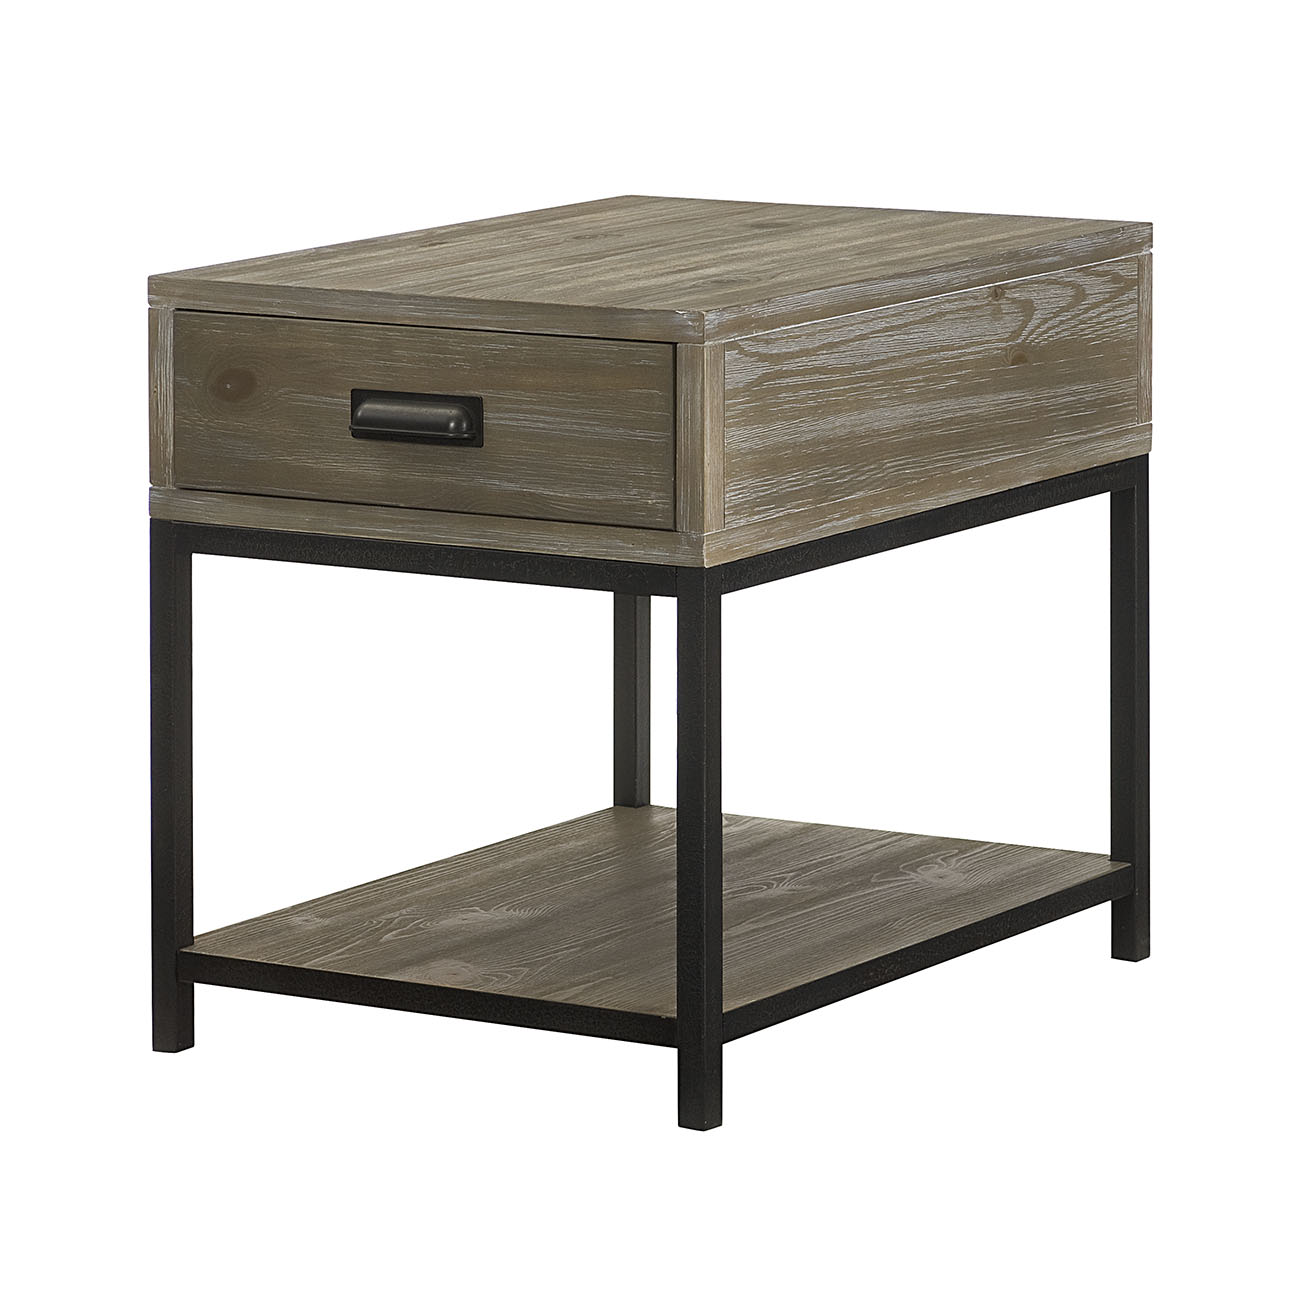 Naomi End Table by Hammary at Crowley Furniture & Mattress